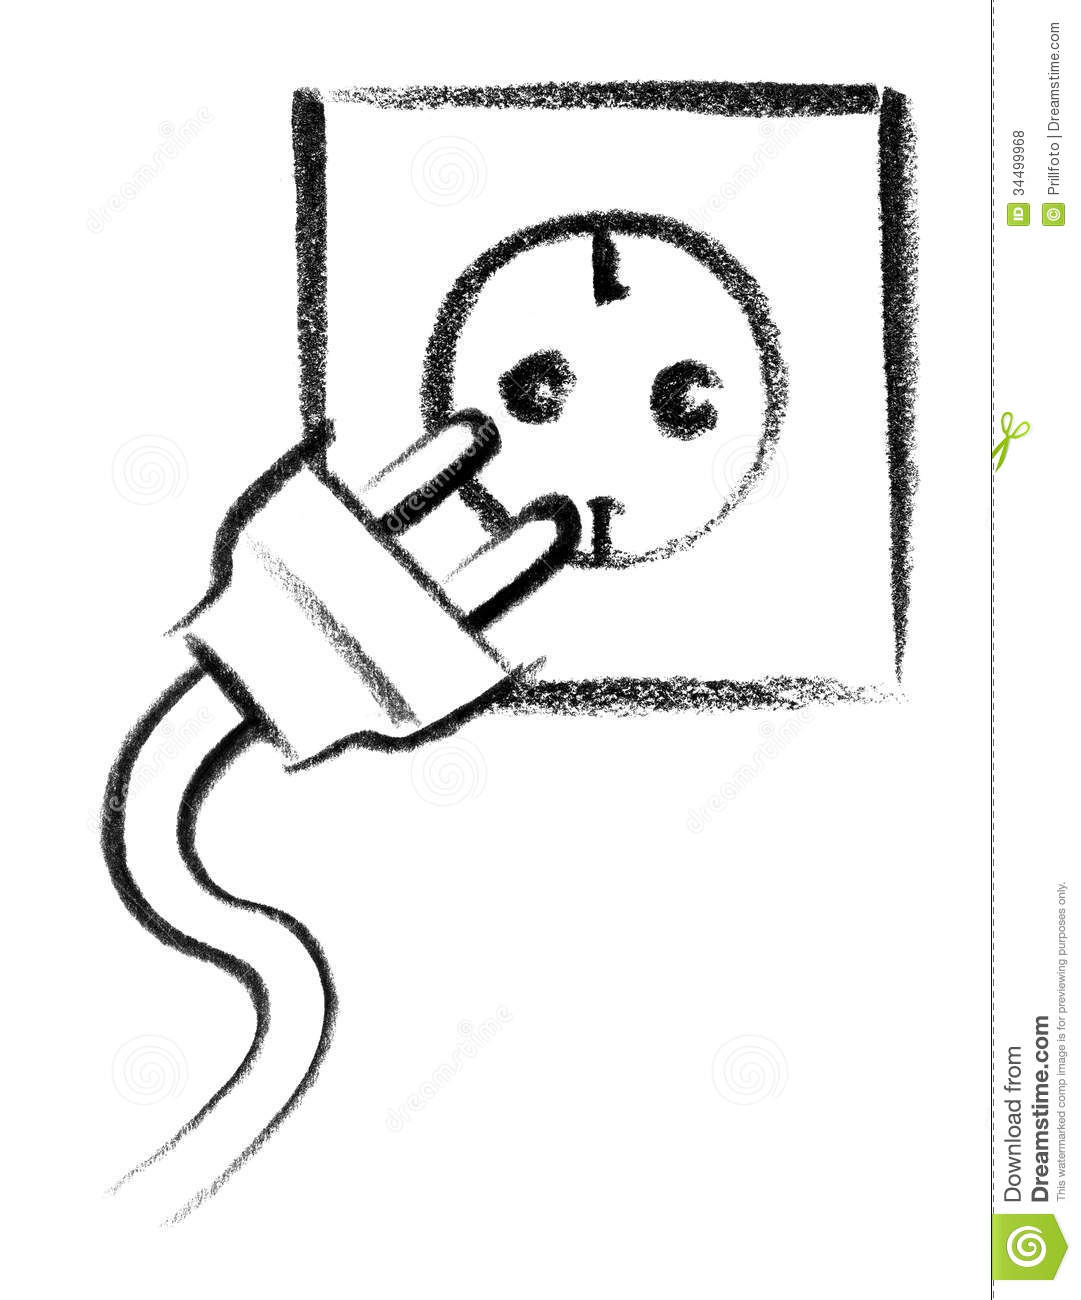 outlet 20clipart